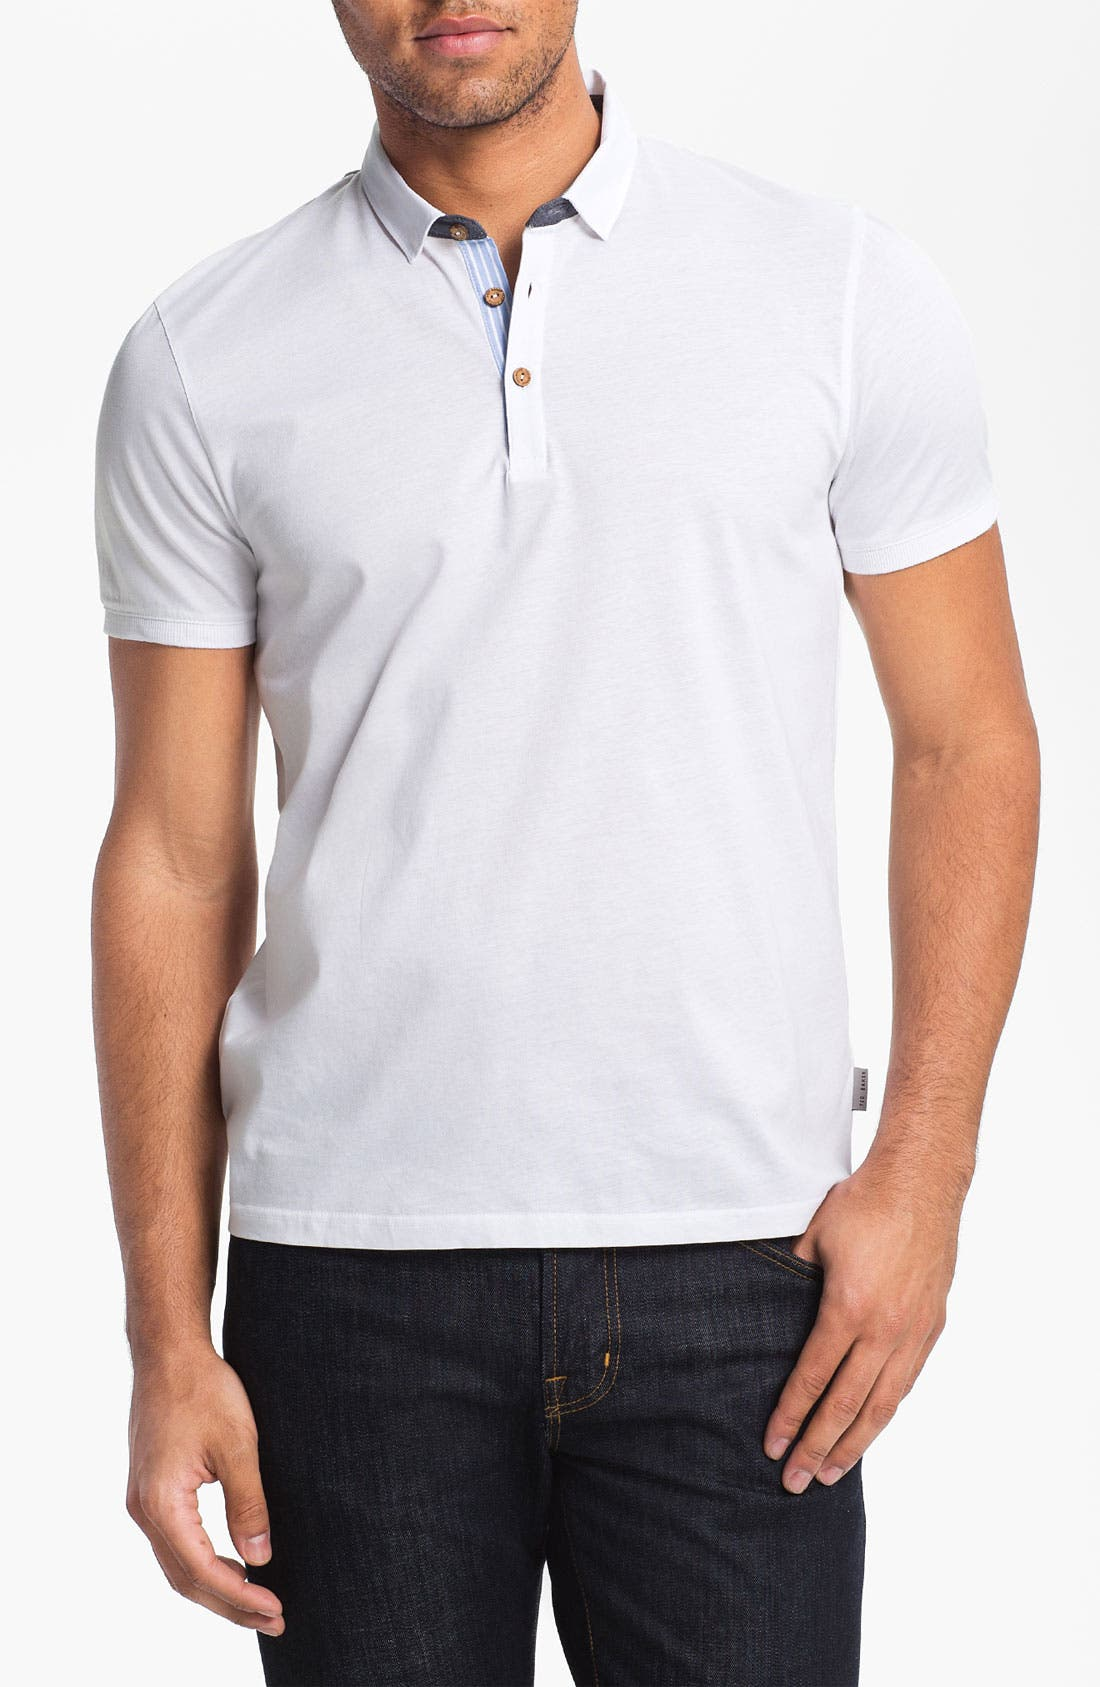 Main Image - Ted Baker London 'Newnord' Polo